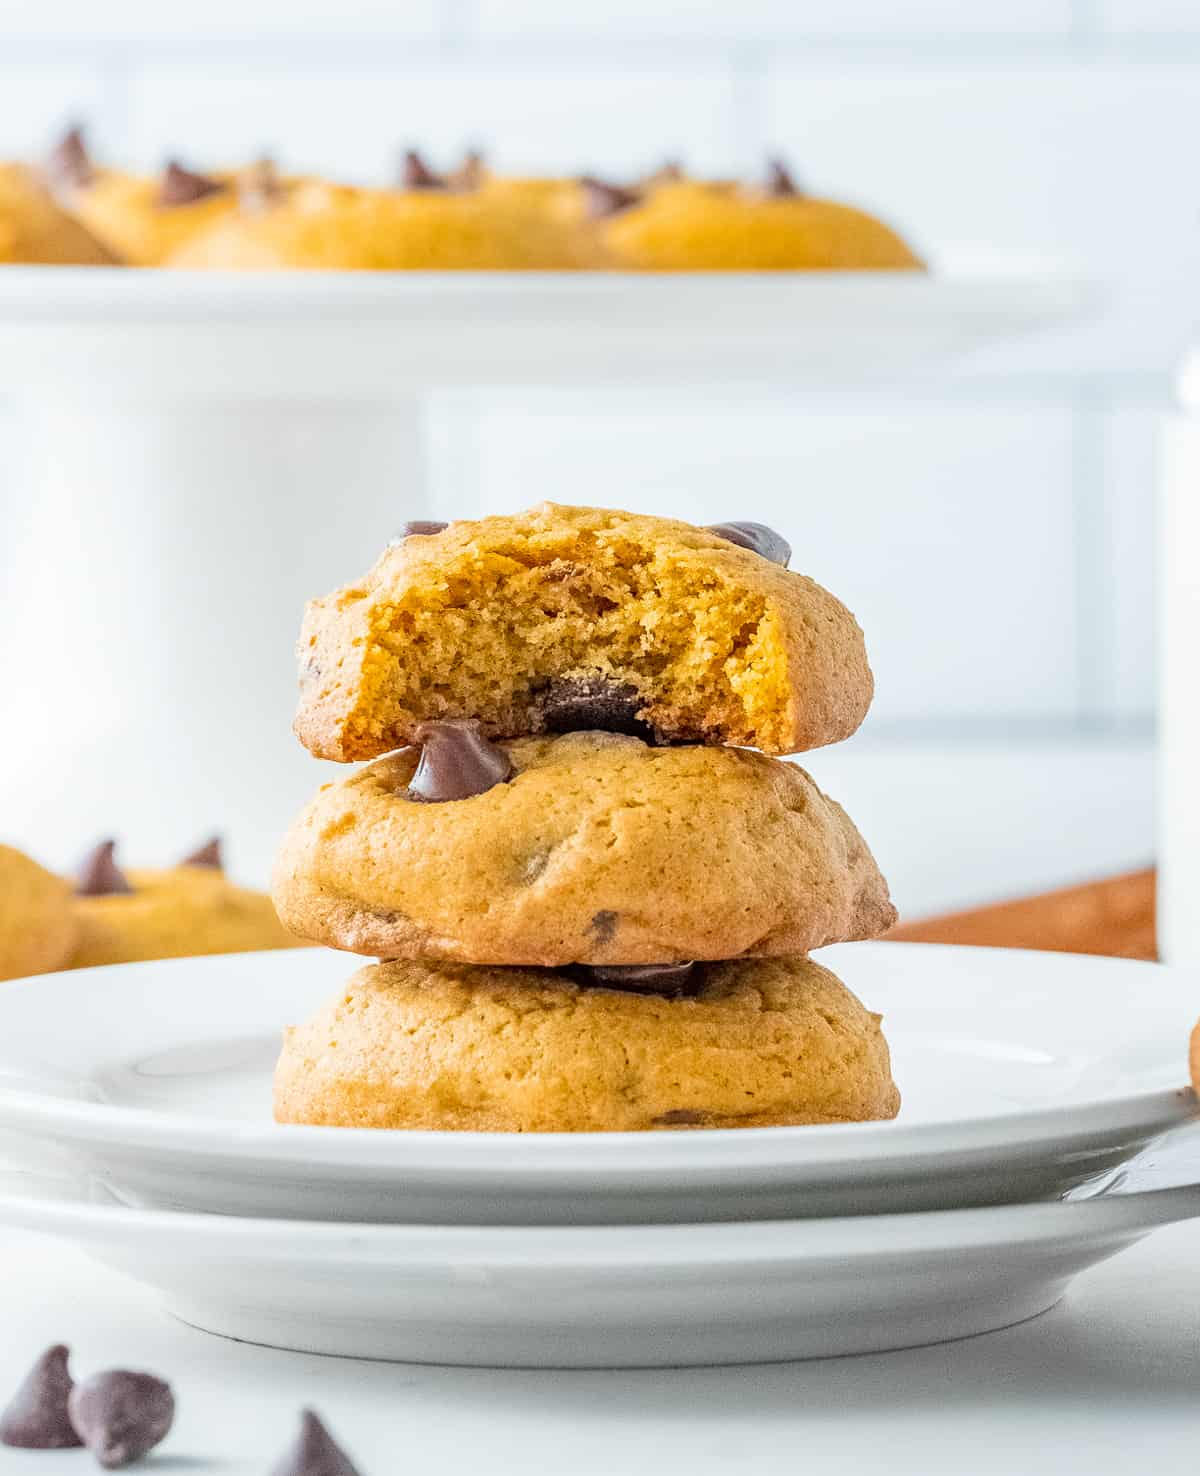 Three stacked Pumpkin Chocolate Chip Cookies on plate with bite taken out of top cookie.